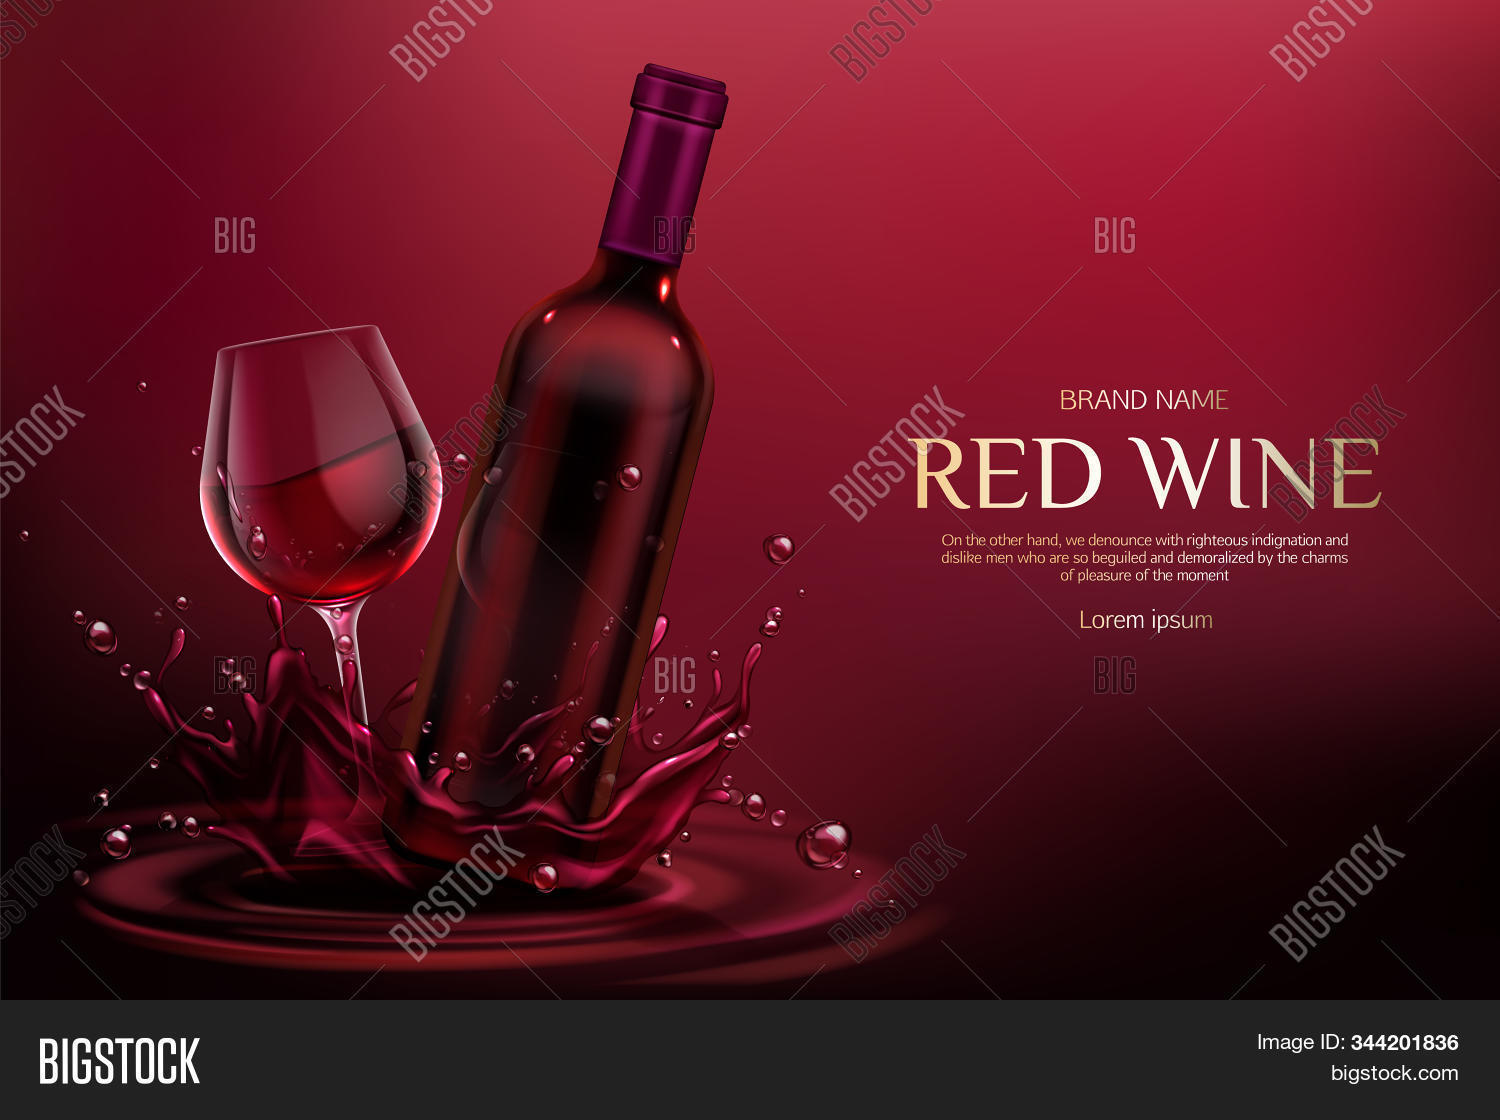 Red Wine Bottle Glass Image Photo Free Trial Bigstock